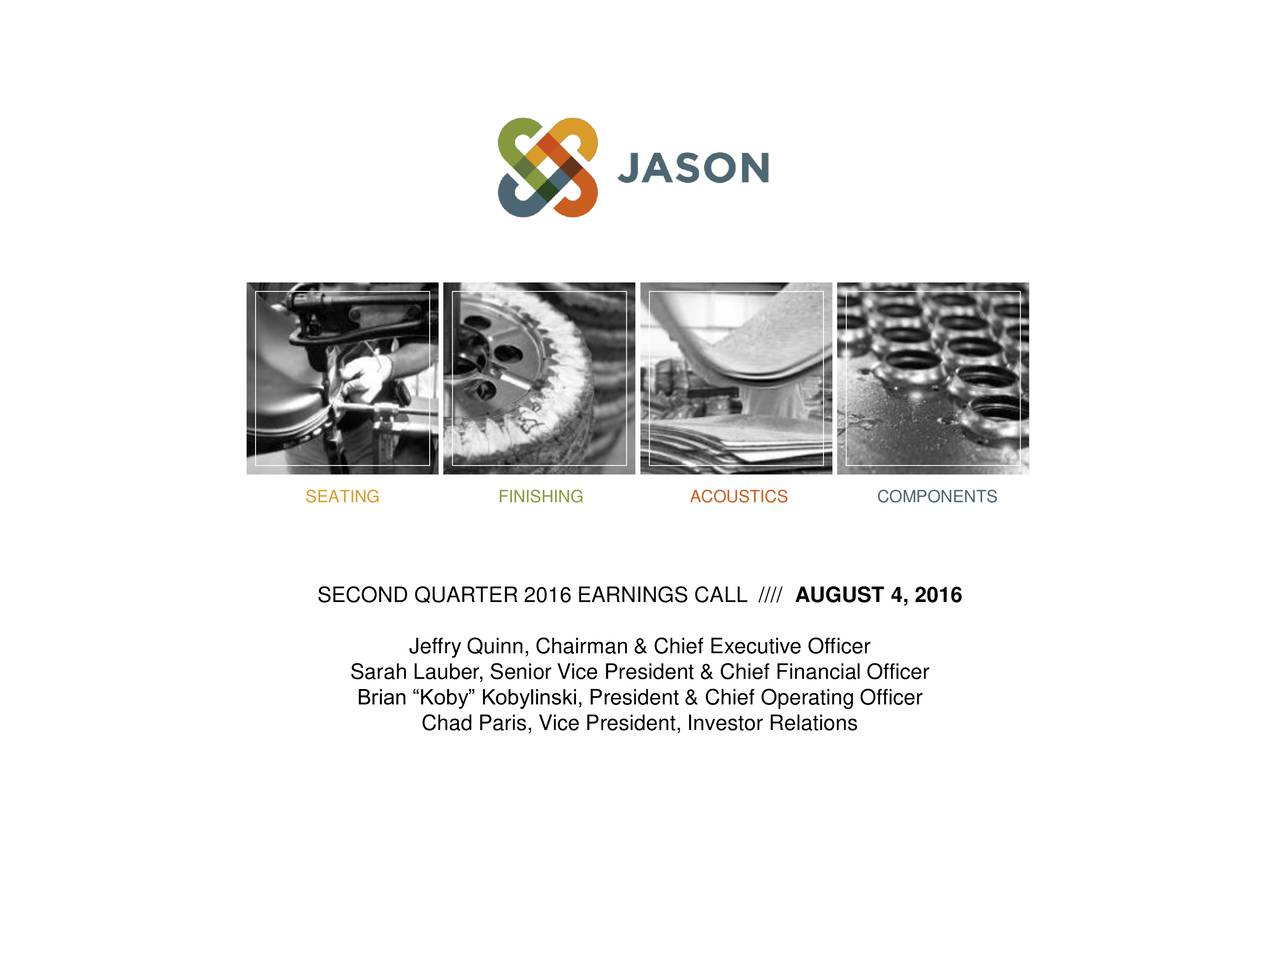 SECOND QUARTER 2016 EARNINGS CALL //// AUGUST 4, 2016 Jeffry Quinn, Chairman & Chief Executive Officer Sarah Lauber, Senior Vice President & Chief Financial Officer Brian Koby Kobylinski, President & Chief Operating Officer Chad Paris, Vice President, Investor Relations